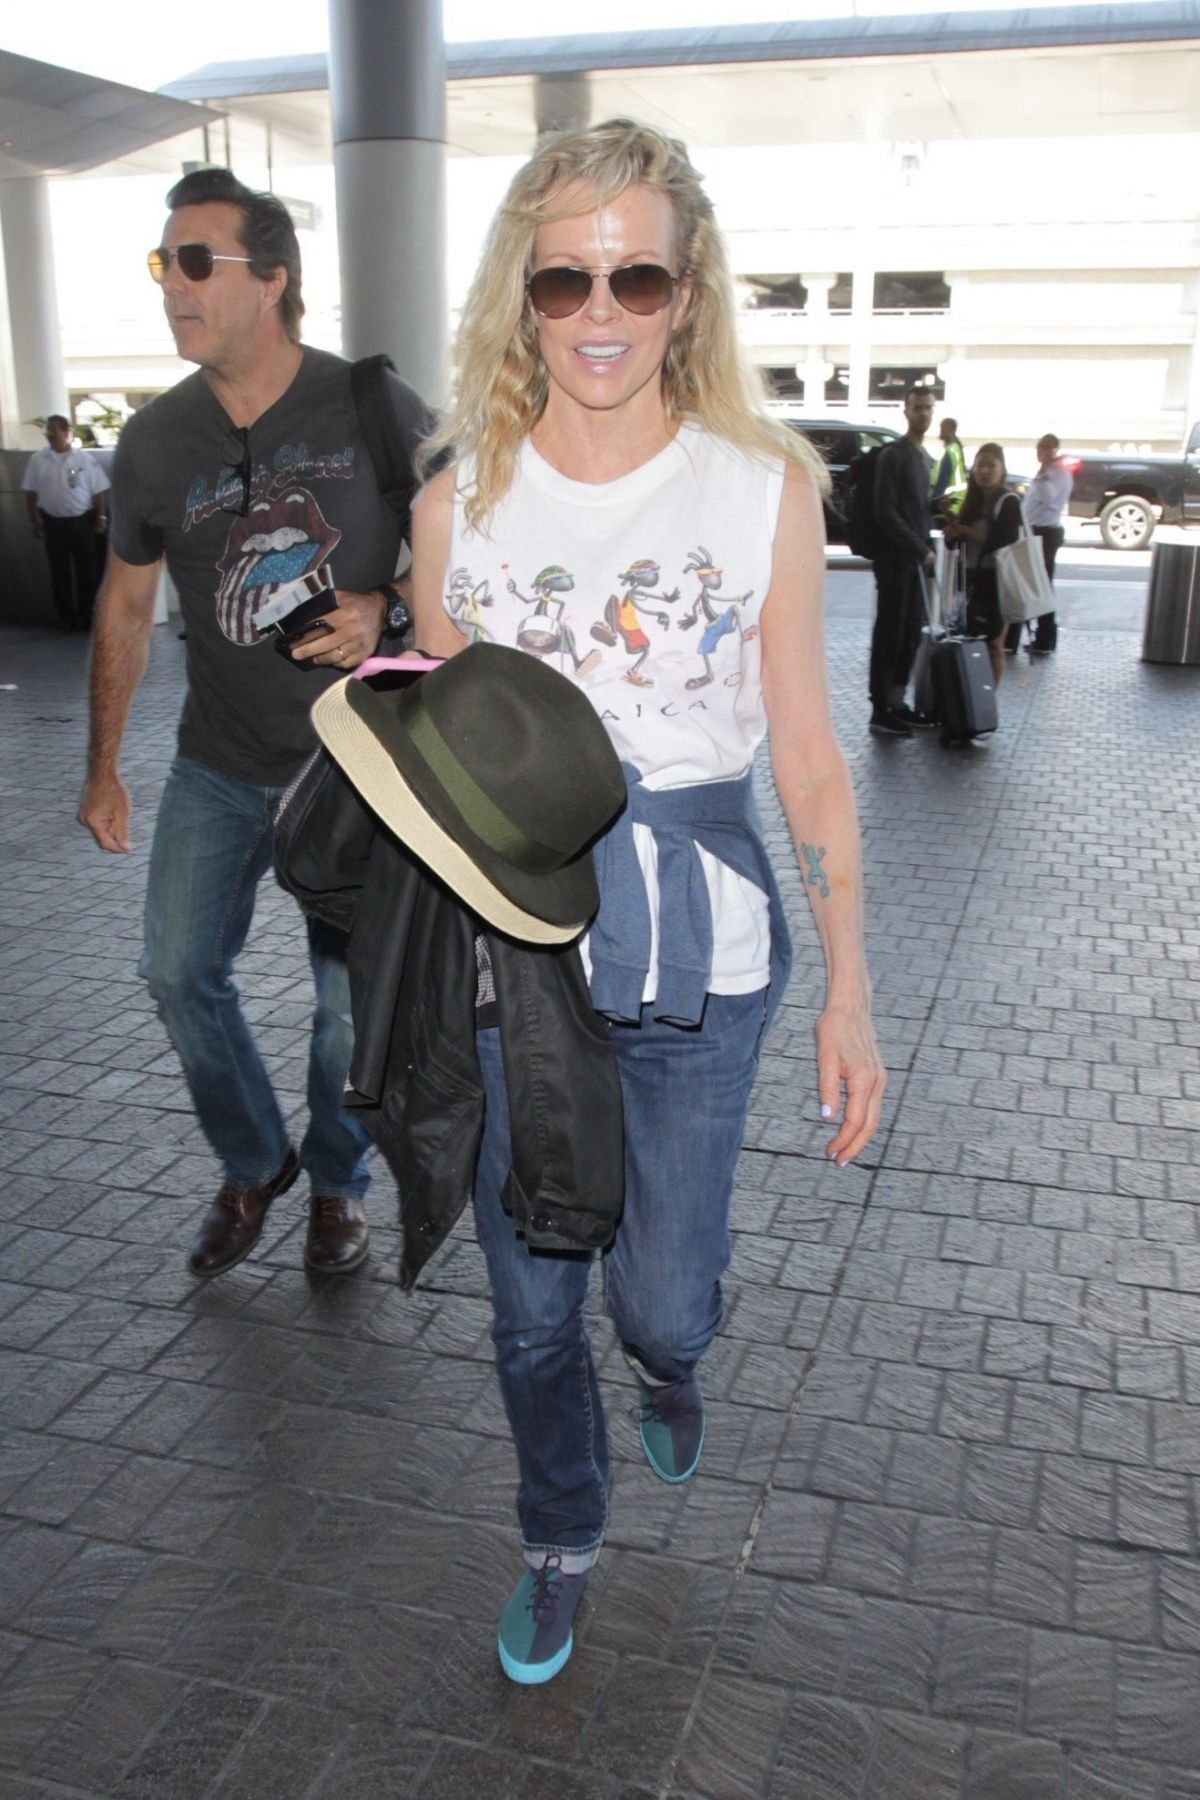 KIM BASINGER at LAX Airport in Los Angeles 06/22/2017